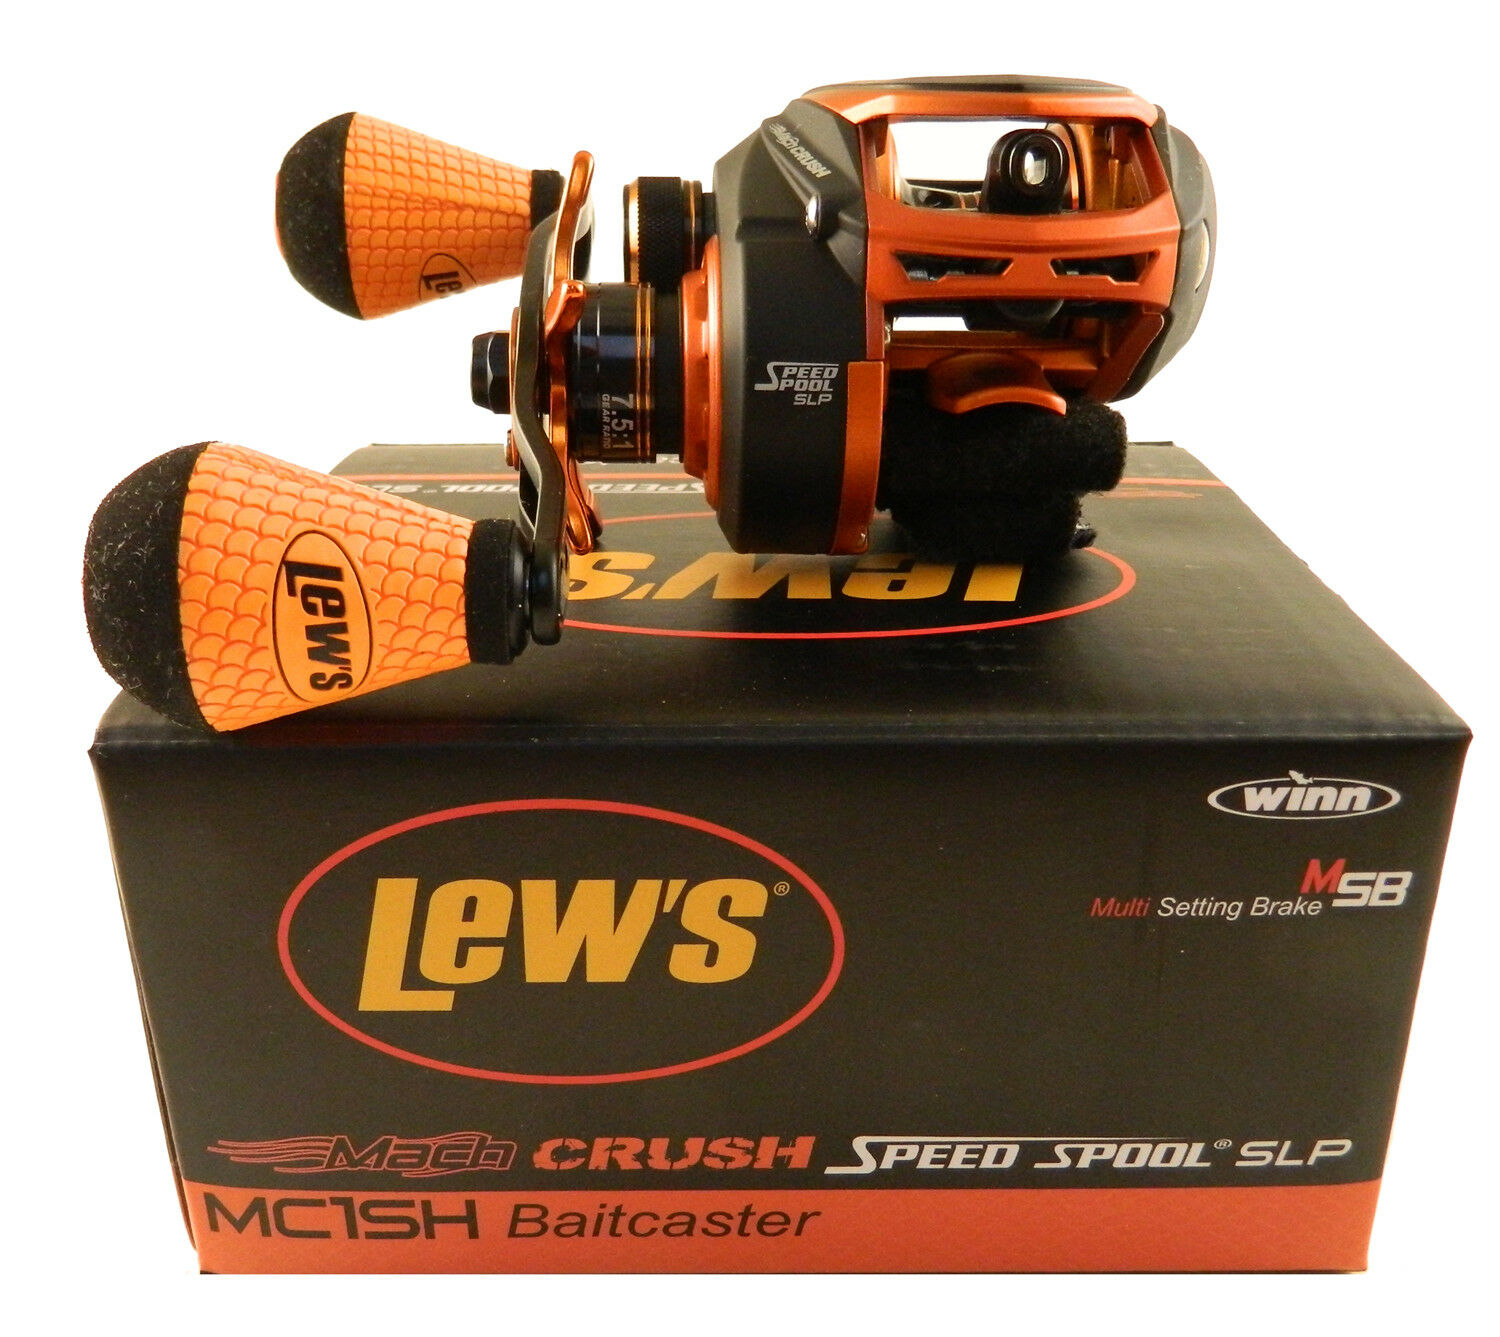 LEW'S MACH SPOOL CRUSH SPEED SPOOL MACH MC1SH 7.5:1 RIGHT HAND BAITCAST REEL 25531b